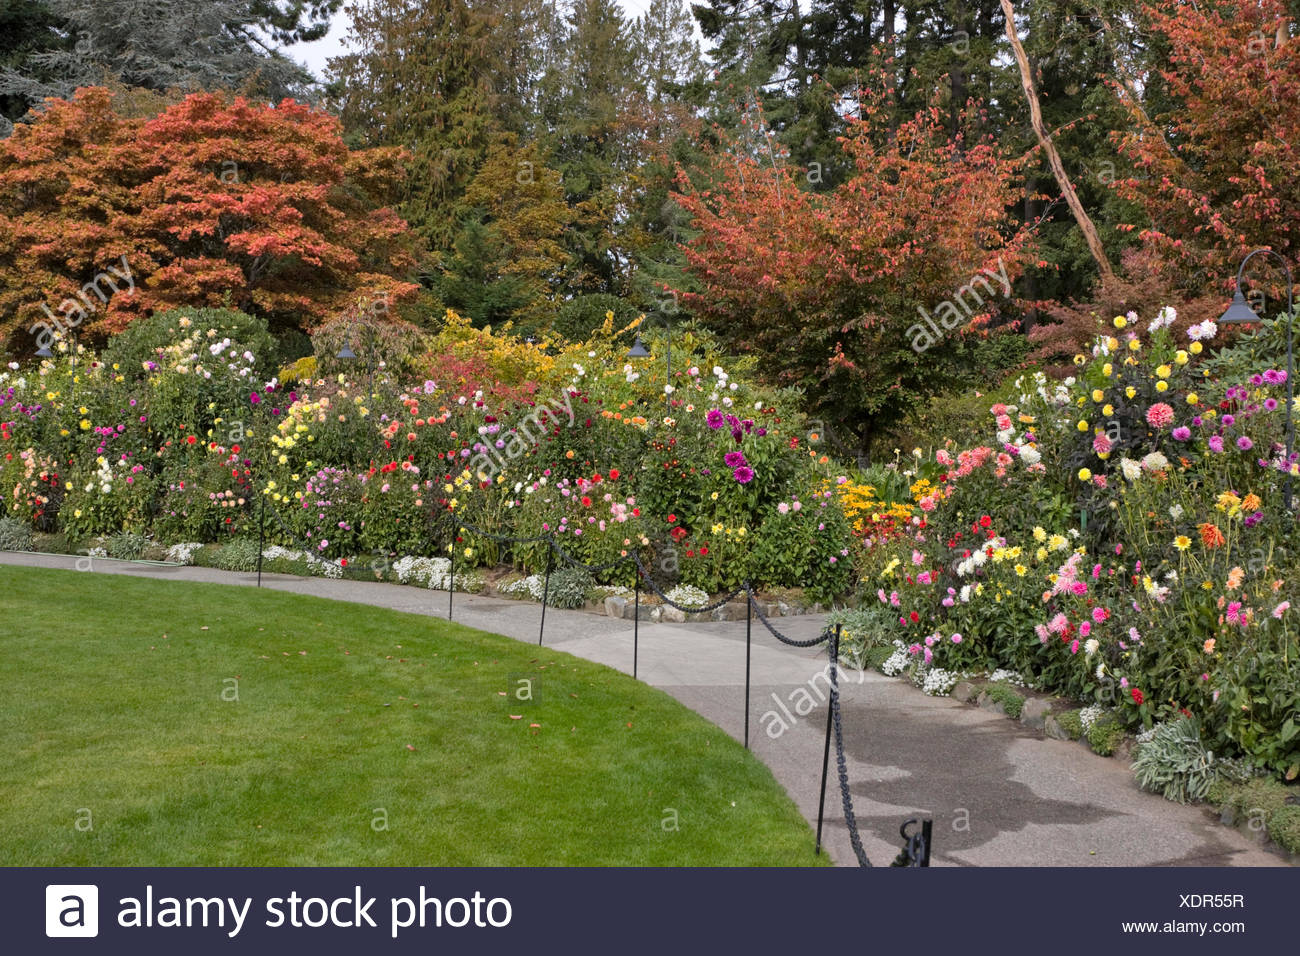 BUTCHART GARDENS DAHLIA BORDER BY THE CONCERT LAWN IN AUTUMN Stock ...